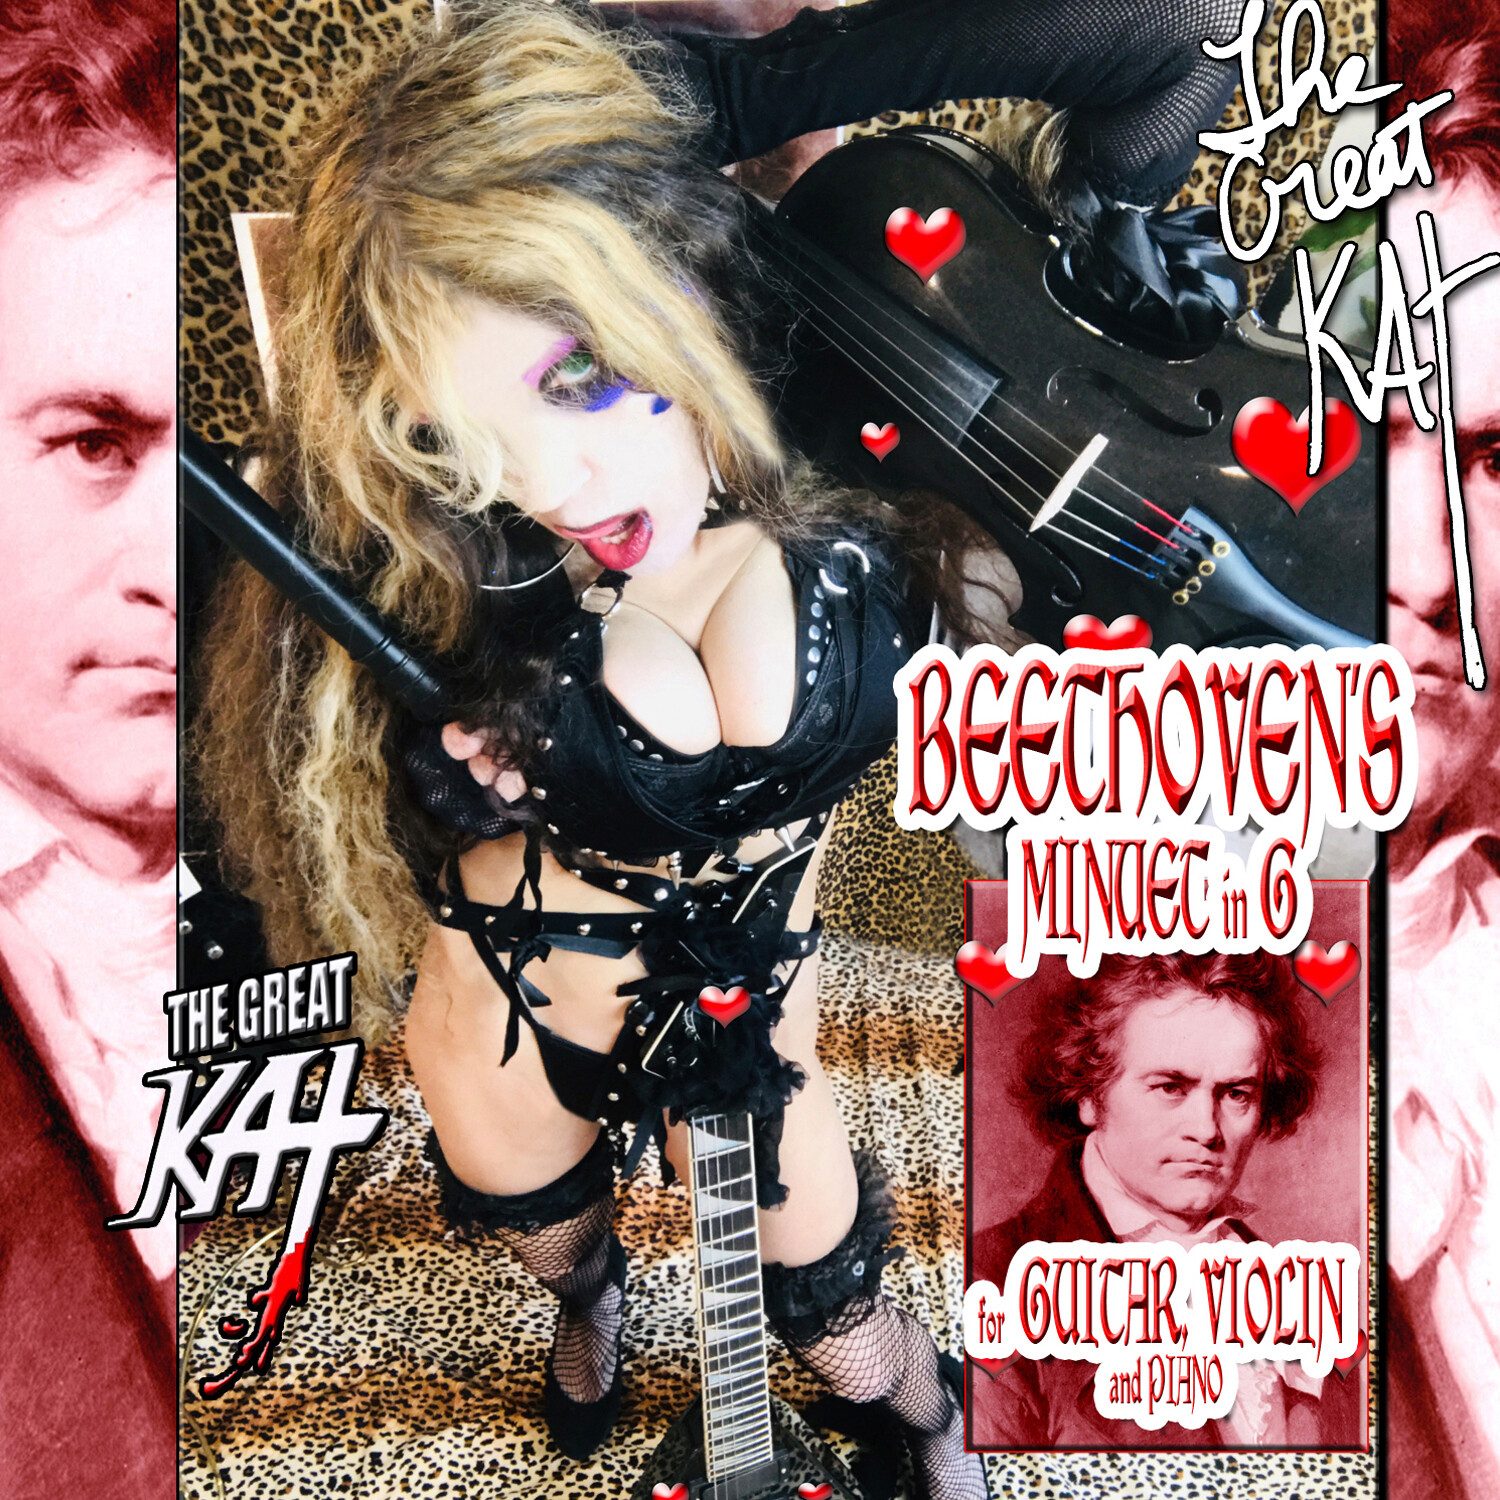 "NEW BEETHOVEN'S ""MINUET IN G for GUITAR, VIOLIN AND PIANO"" SINGLE Music CD by THE GREAT KAT (1:08)! PERSONALIZED AUTOGRAPHED by THE GREAT KAT! (Signed to Customer's Name)! HAPPY BEETHOVEN'S BIRTHDAY!"